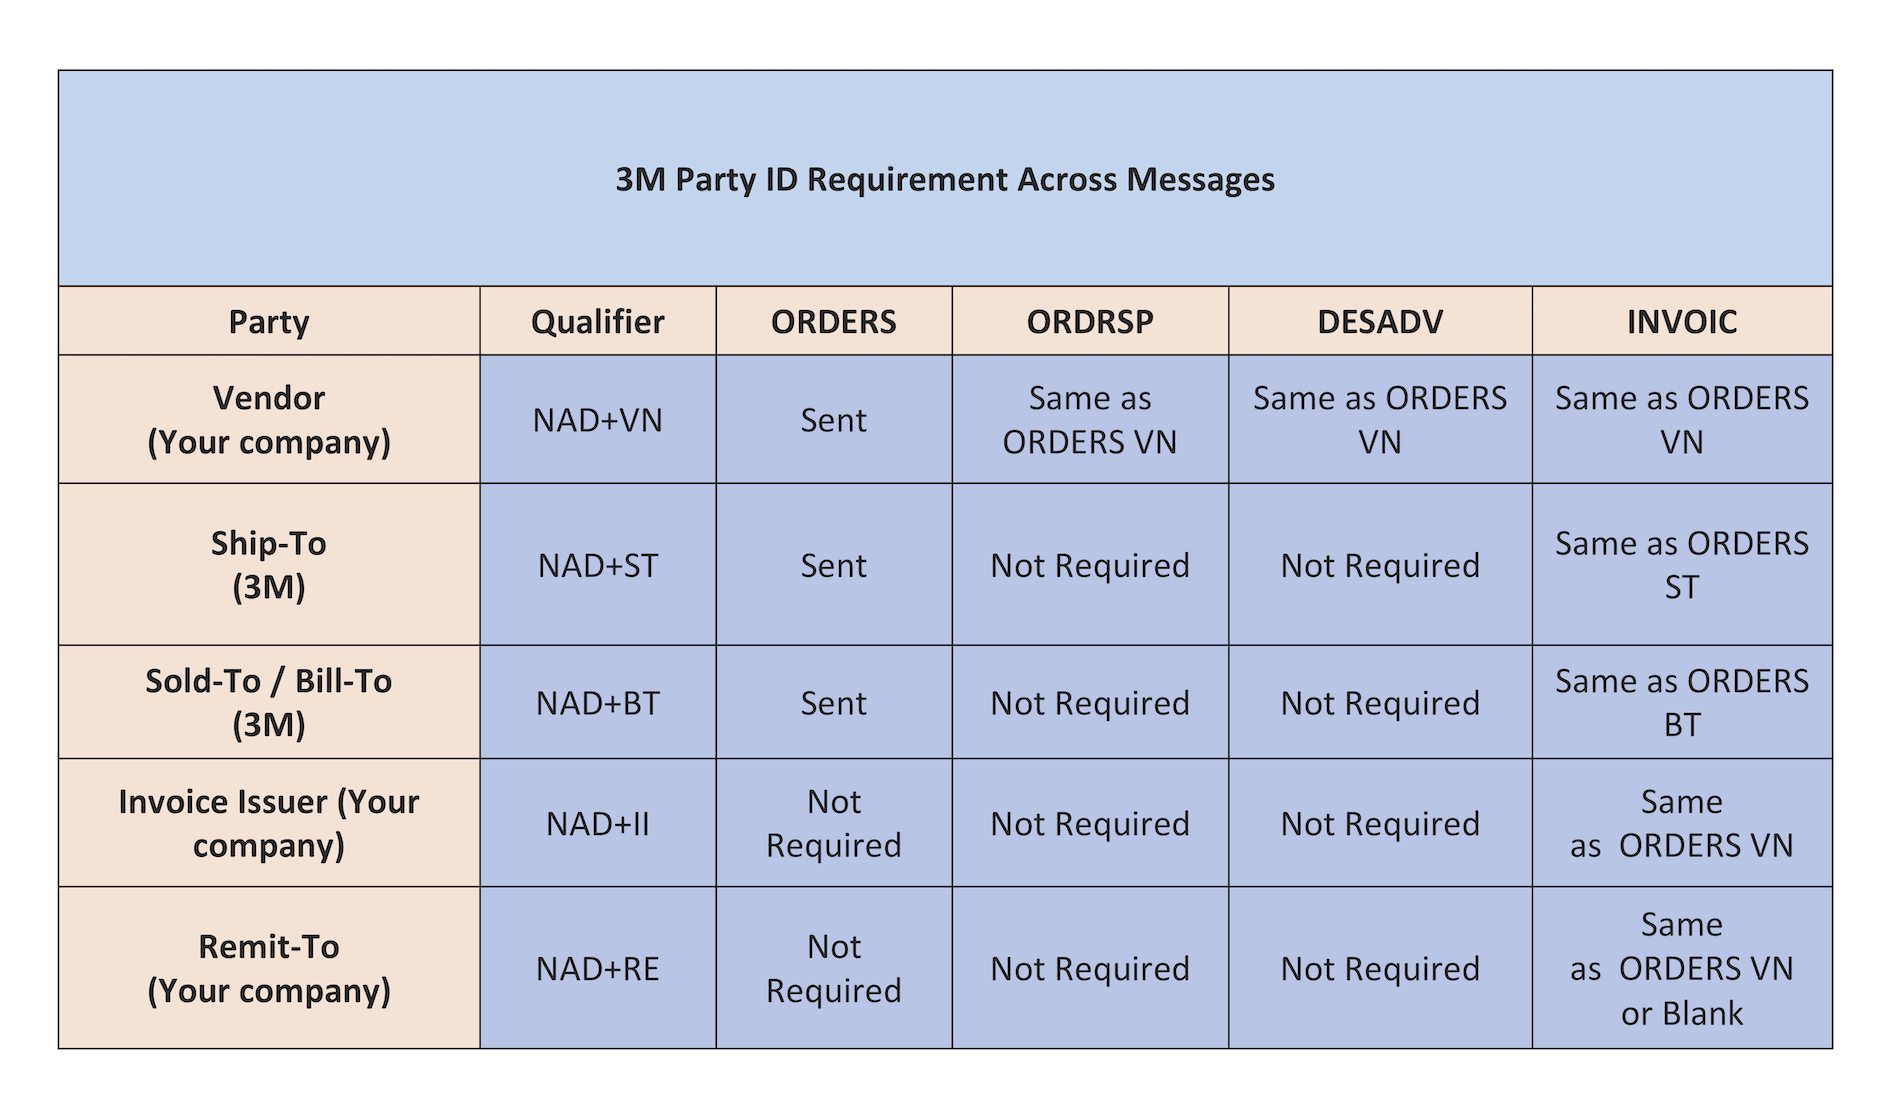 3M Party ID Requirement Across Messages